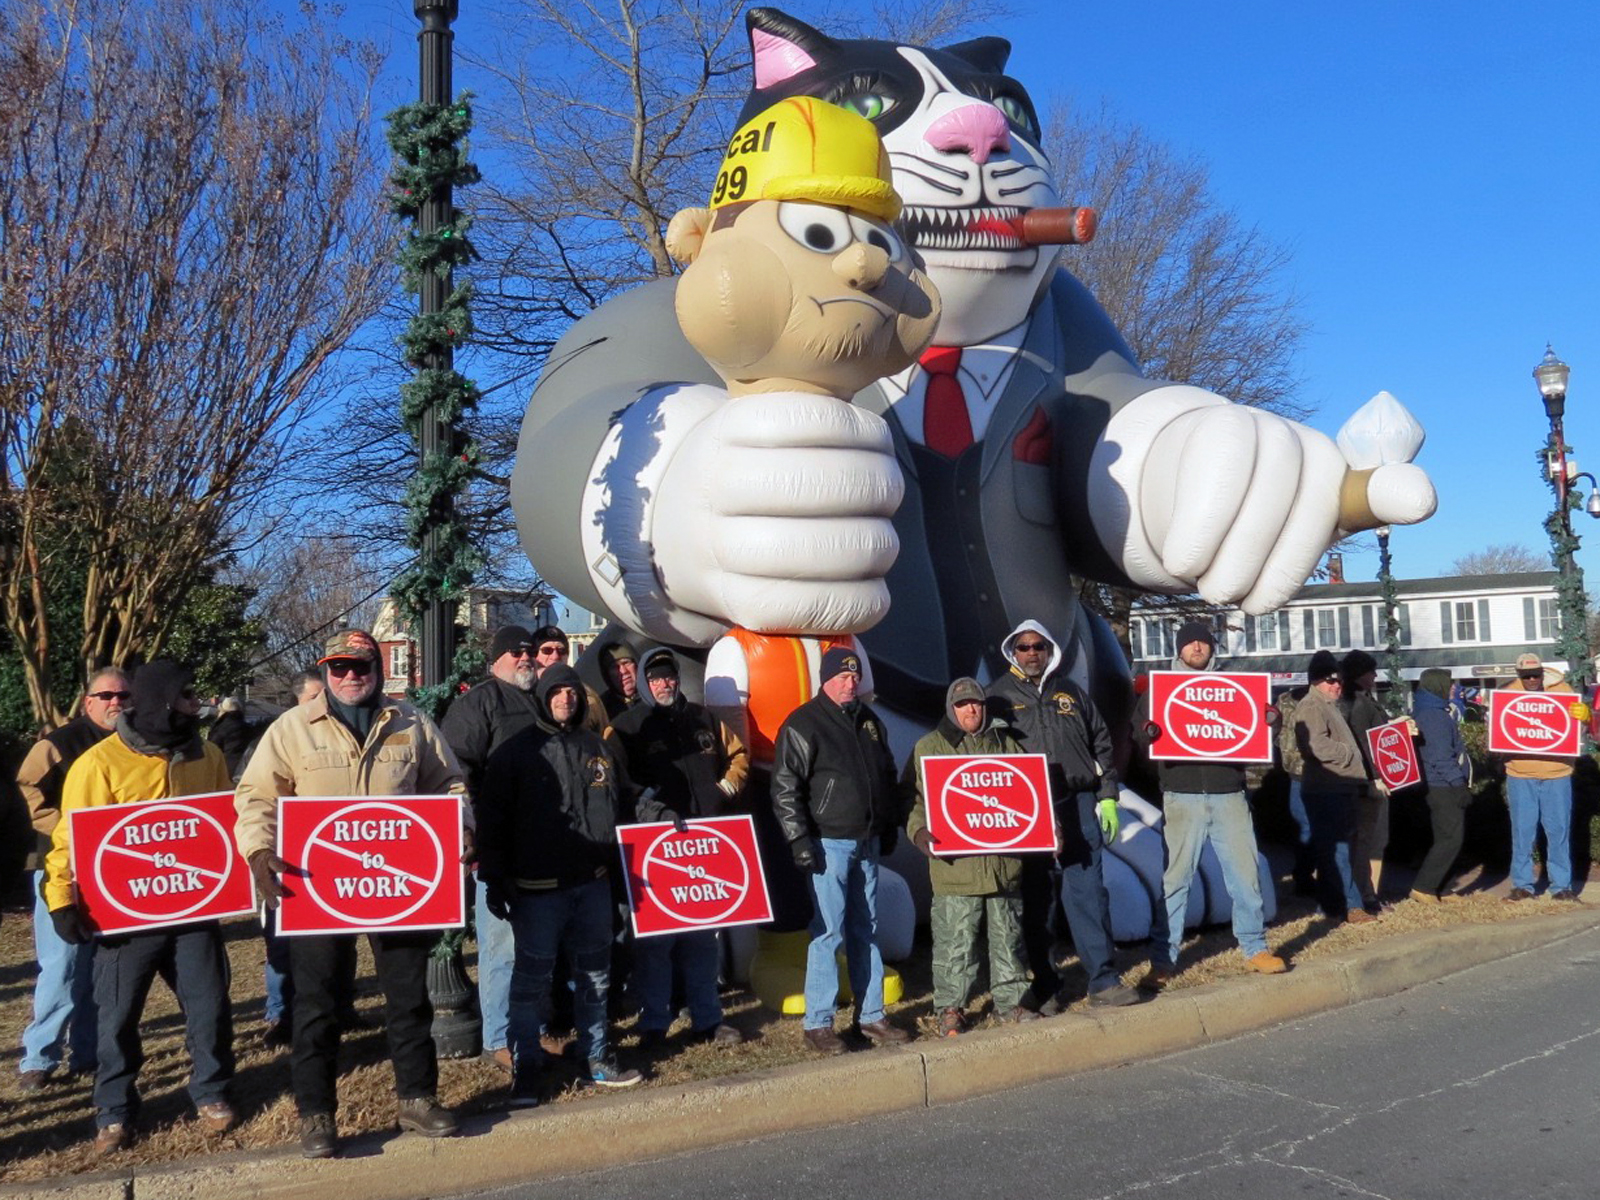 Teamsters Local 355 News Willys Turn Signal Wiring Diagram Members Protest Sussex County Del Right To Work Bill Joined A Large Contingent Of Labor Union And Anti Rtw Activists January 2